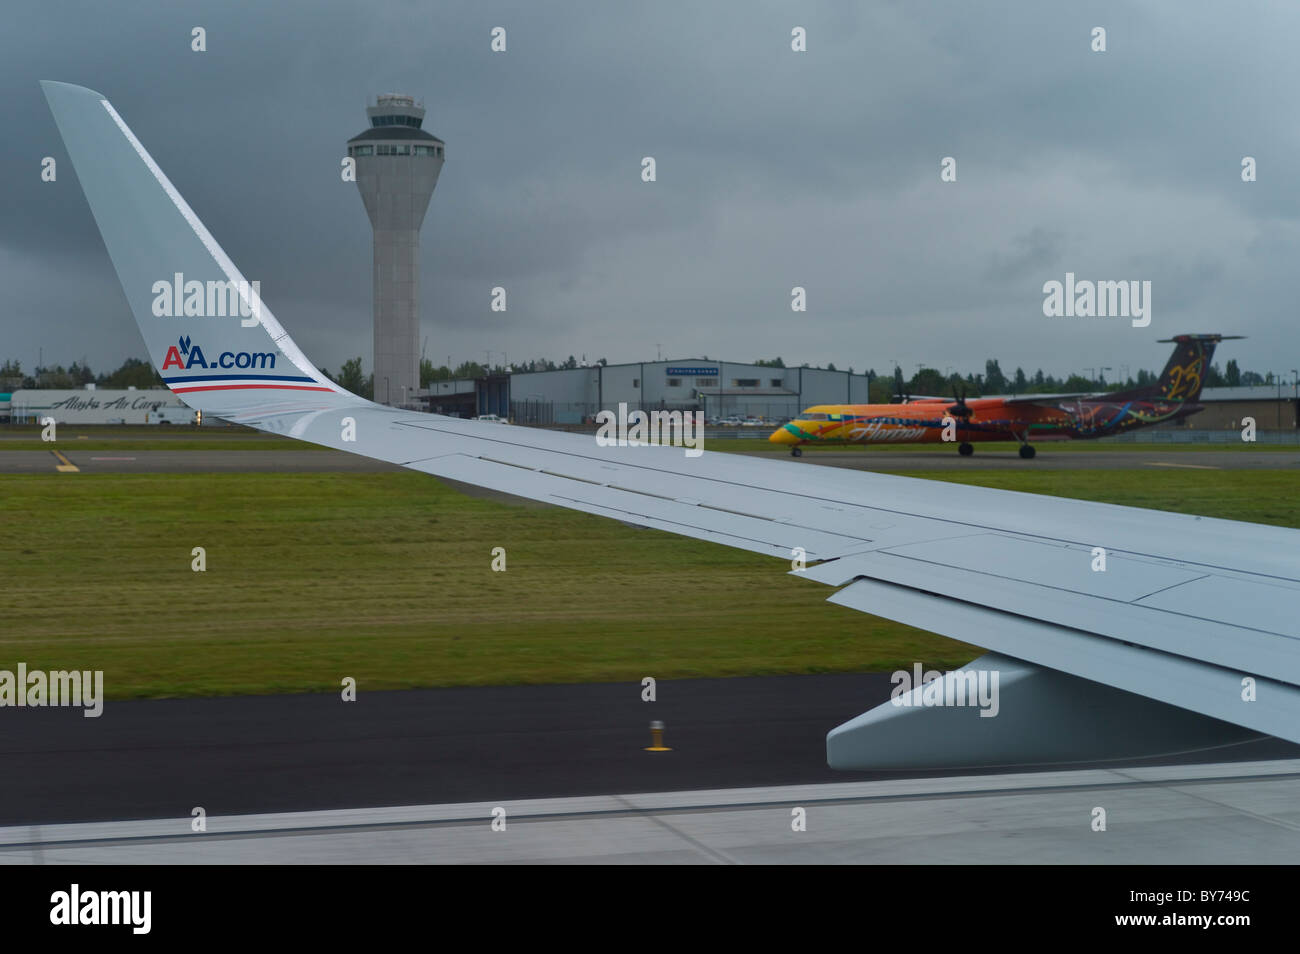 Airliners at takeoff, Seattle, Washington, USA - Stock Image